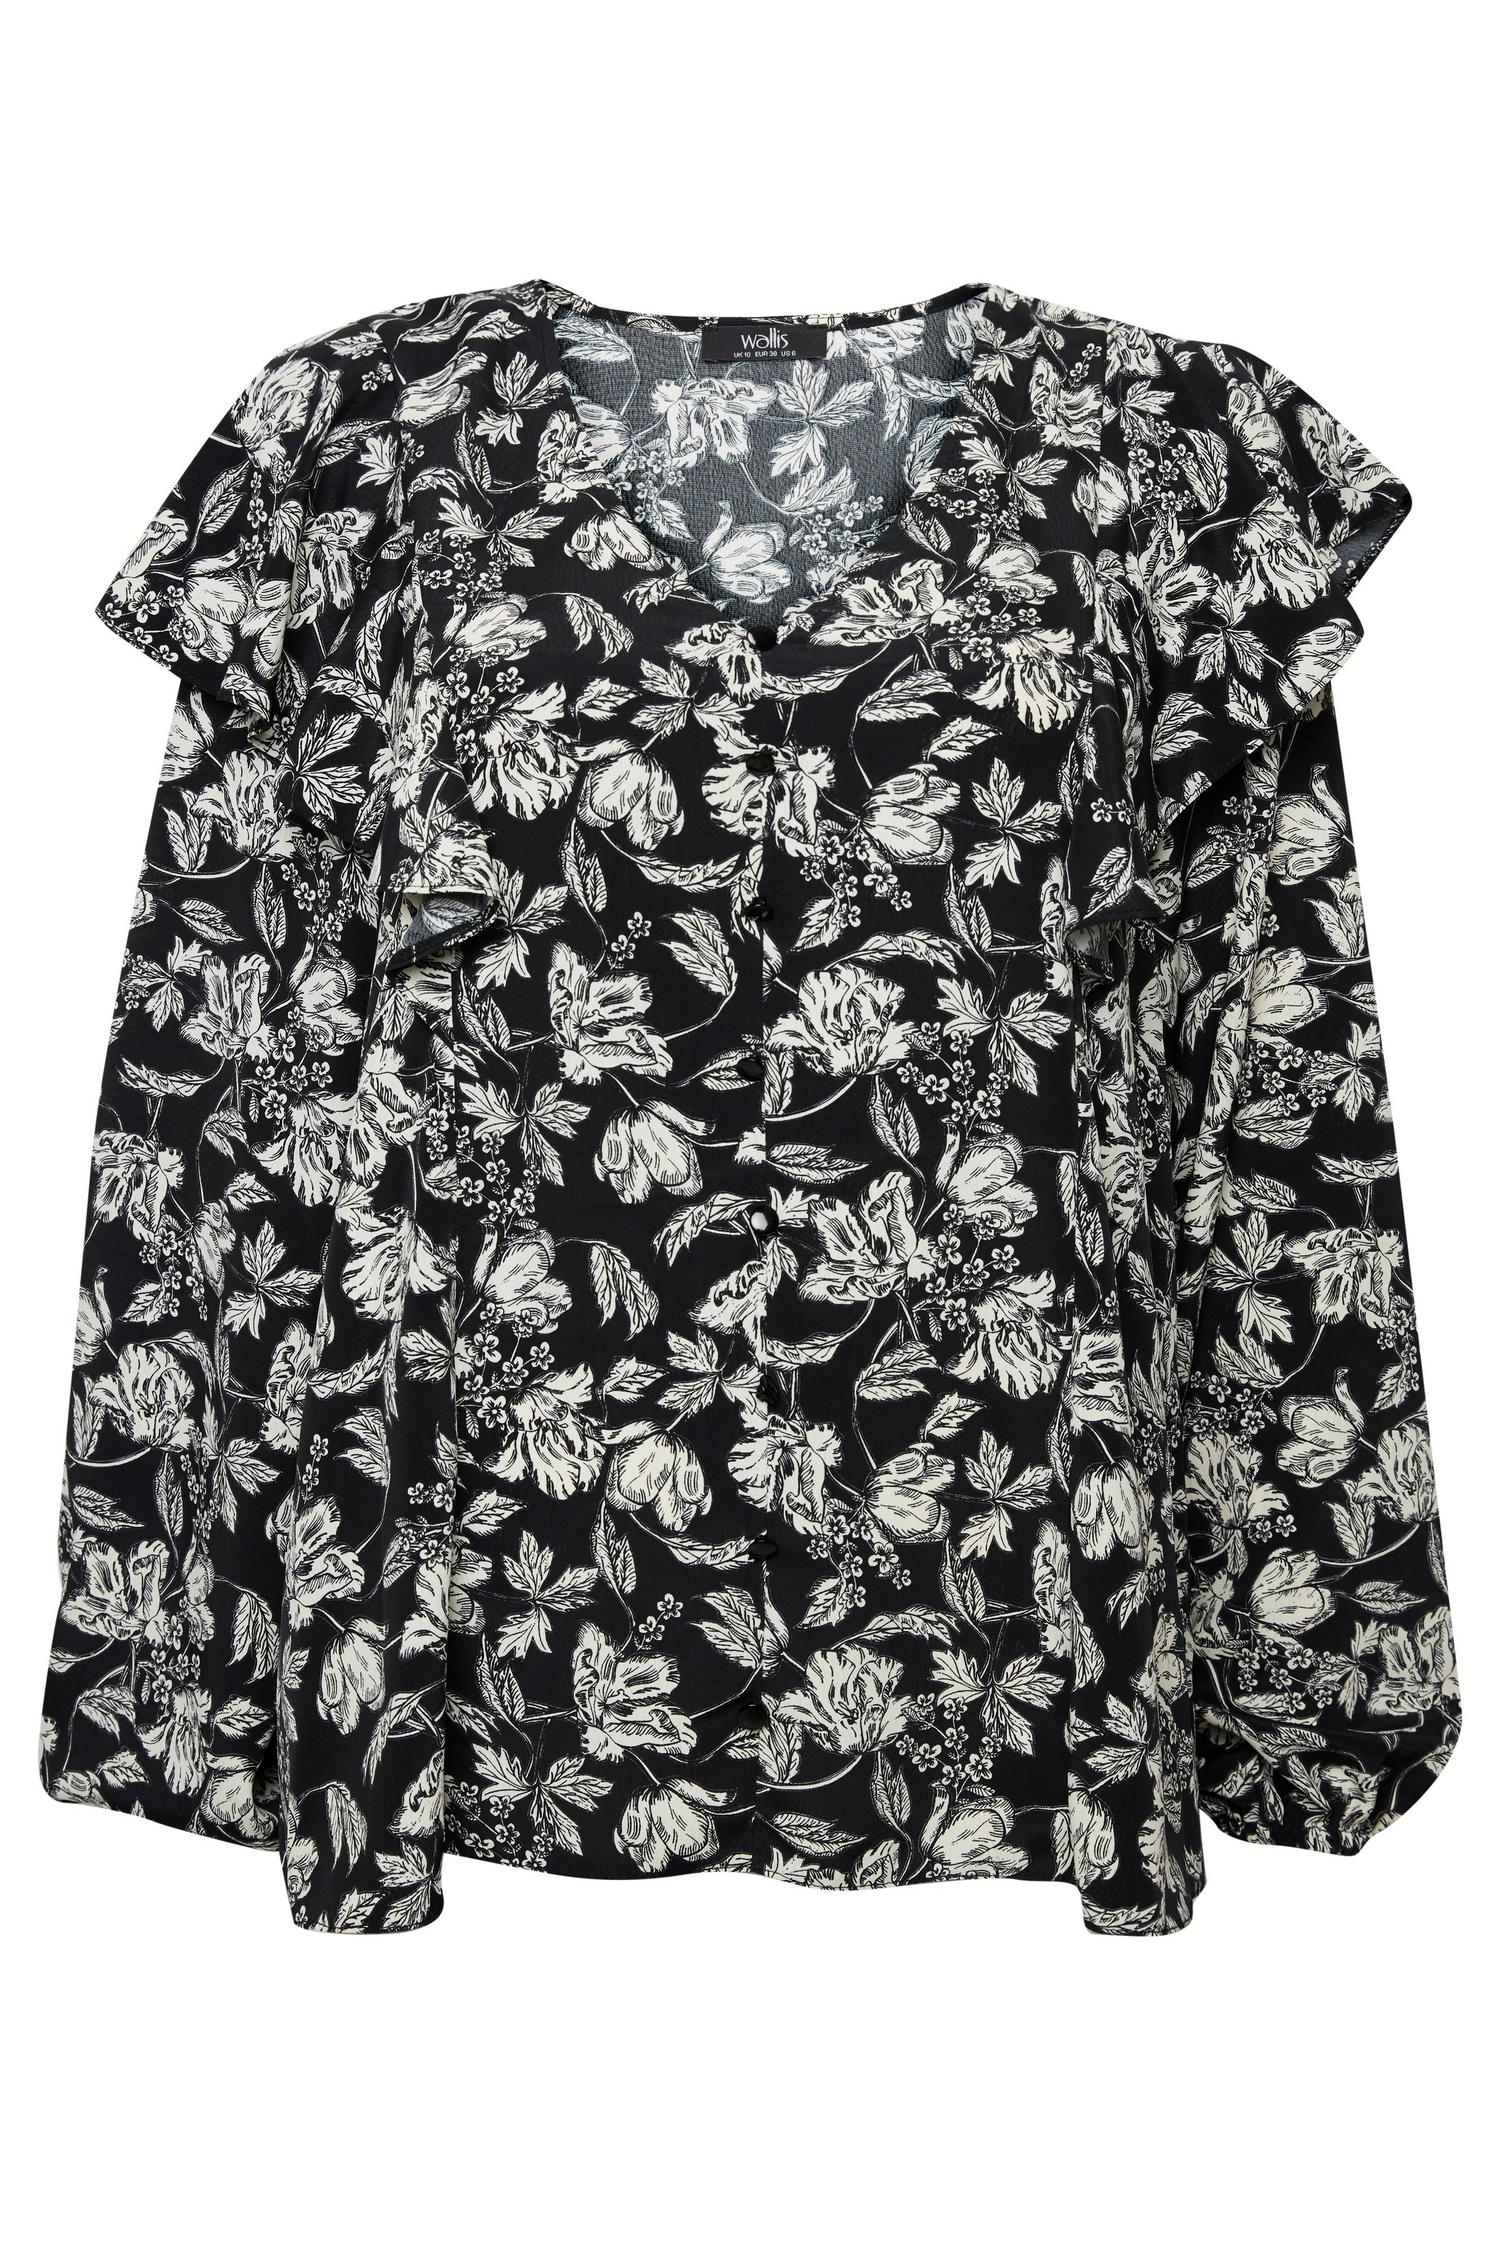 585 Monochrome Floral Print Ruffle Top image number 4